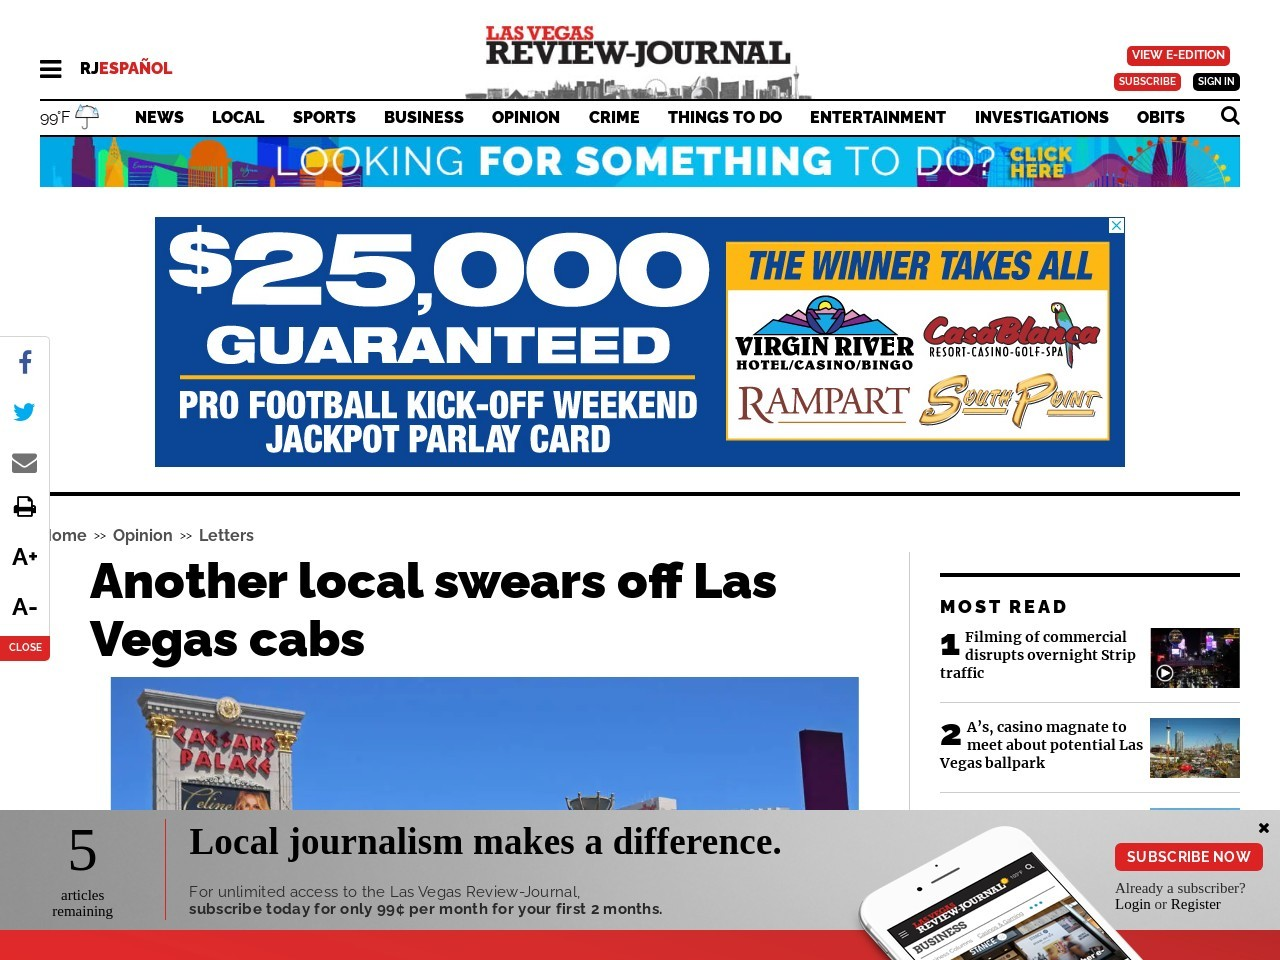 Another local swears off Las Vegas cabs